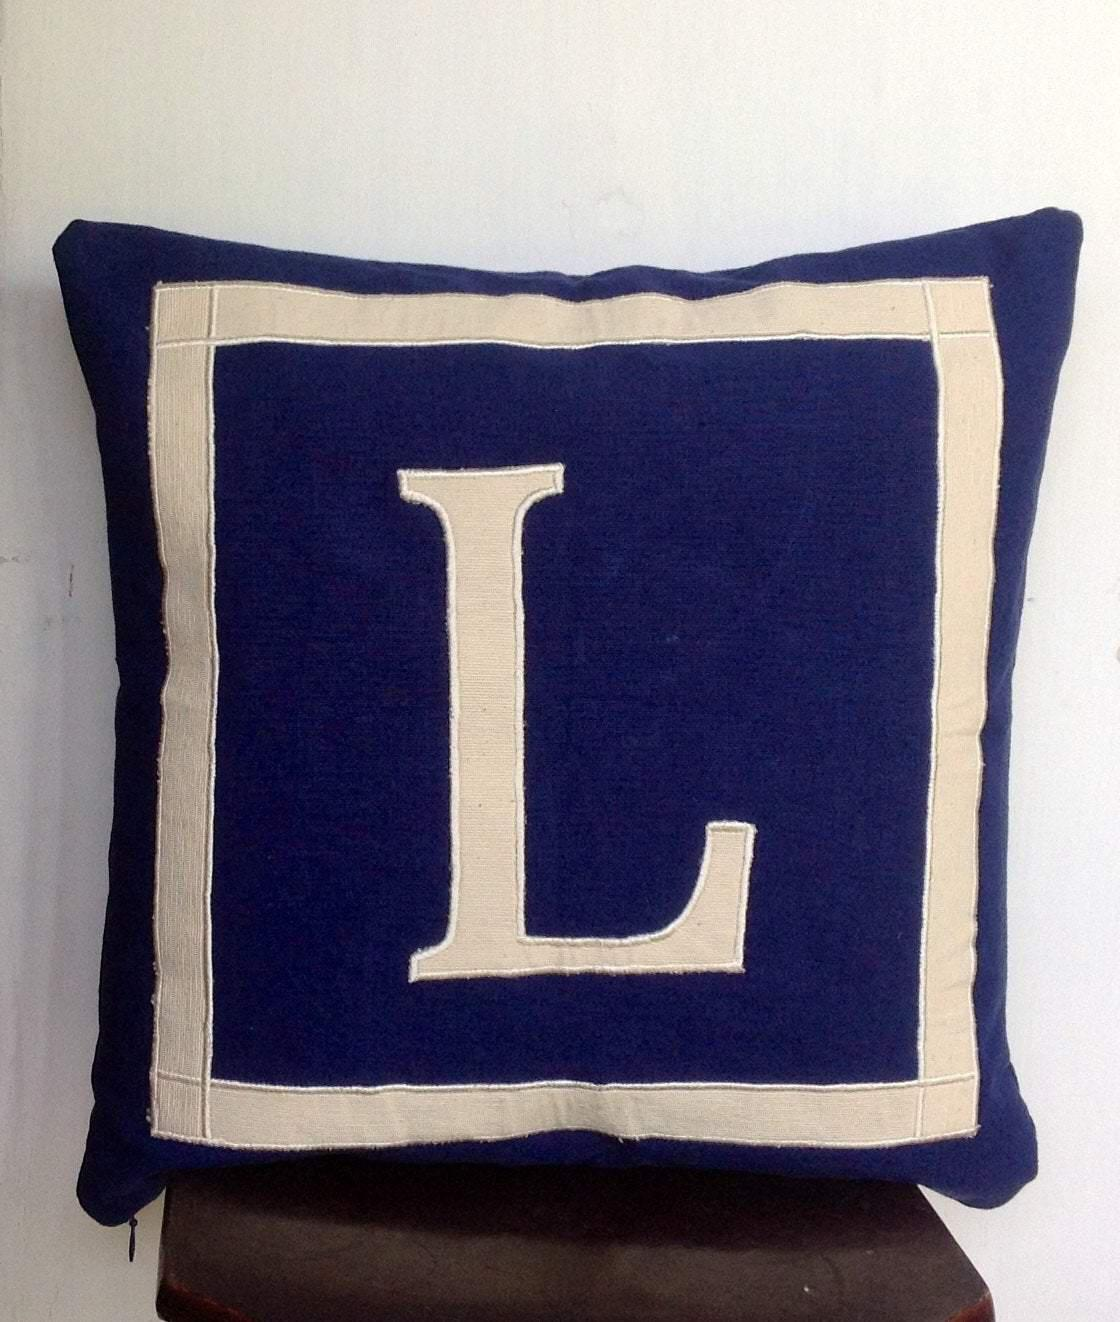 "30% OFF unique gift ideas for women, Monogram Pillows 18"" x18""x16x16, - Navy blue cushion cover-Alphabet Navy monogram cushion cov - Snazzy Living"